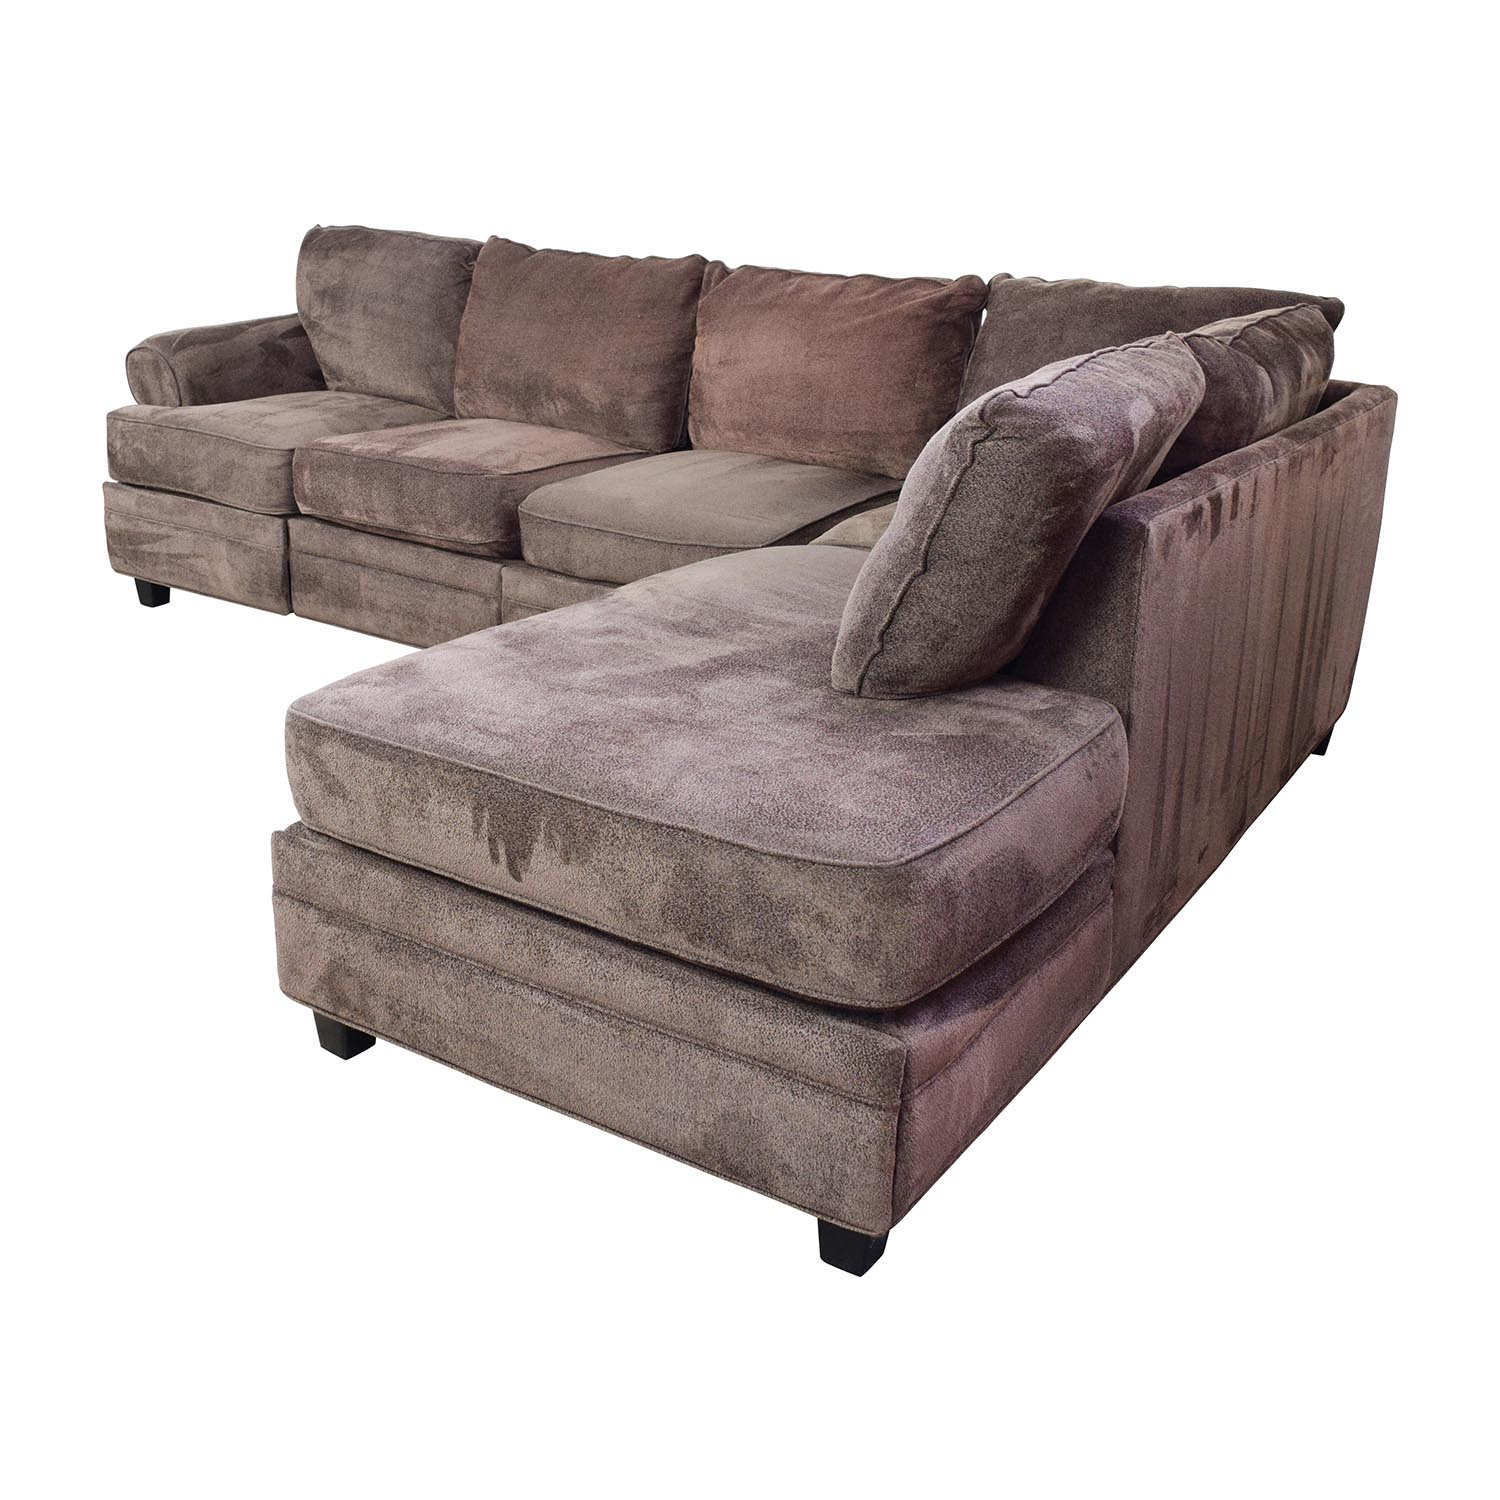 Bobs furniture sofa with storage hereo sofa for Playpen sectional sofa bobs